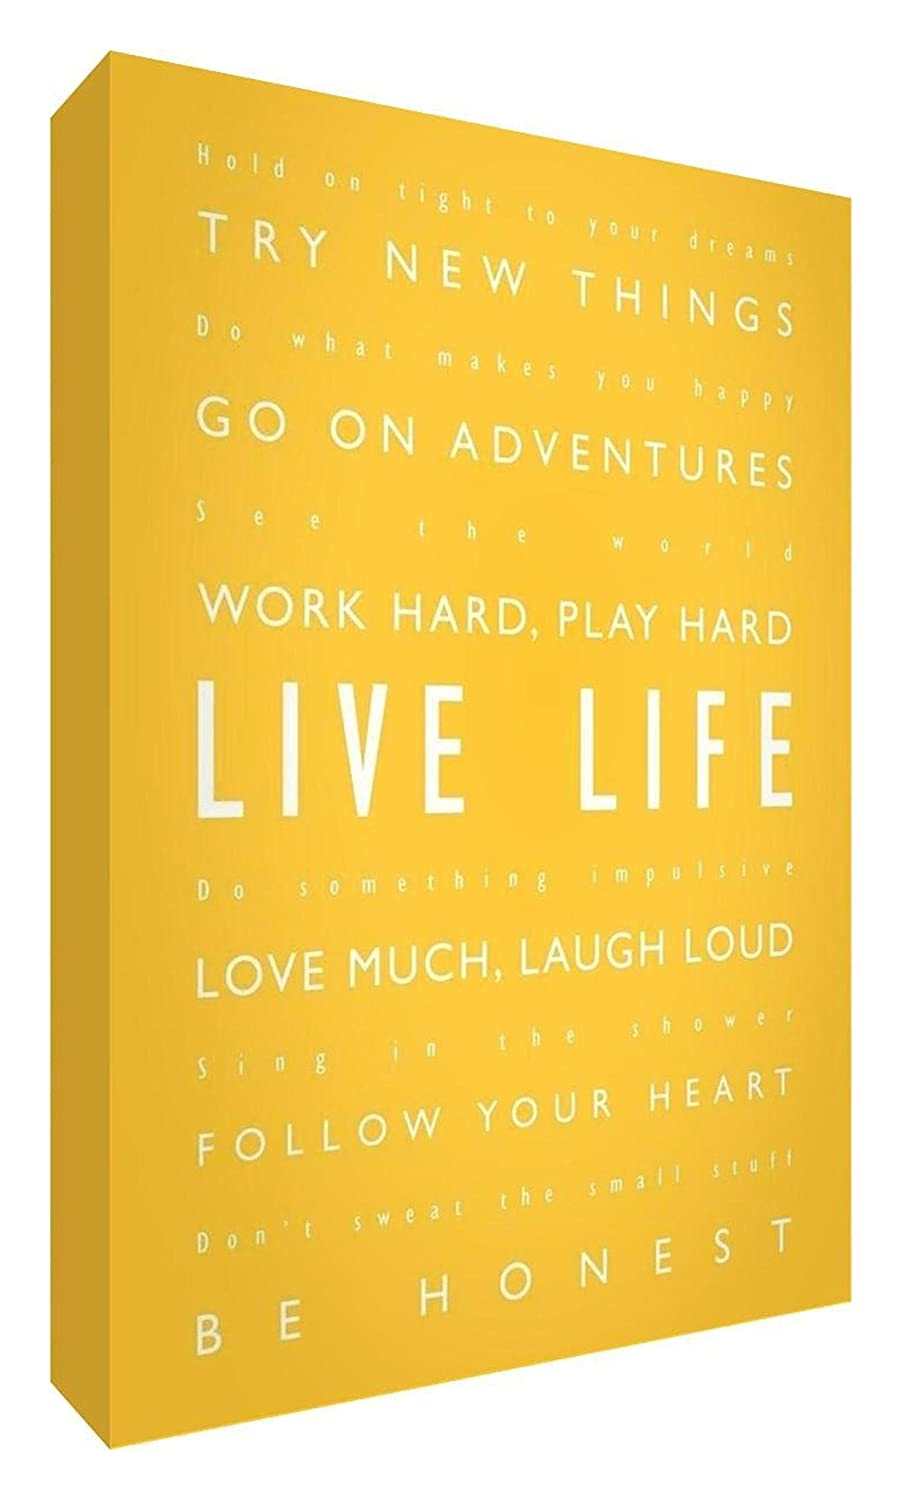 Feel Good Art Gallery Wrapped Box Canvas in Modern Typographic Design (30 x 20 x 4 cm, Yellow, Live Life) NBES-LVLF-128-06